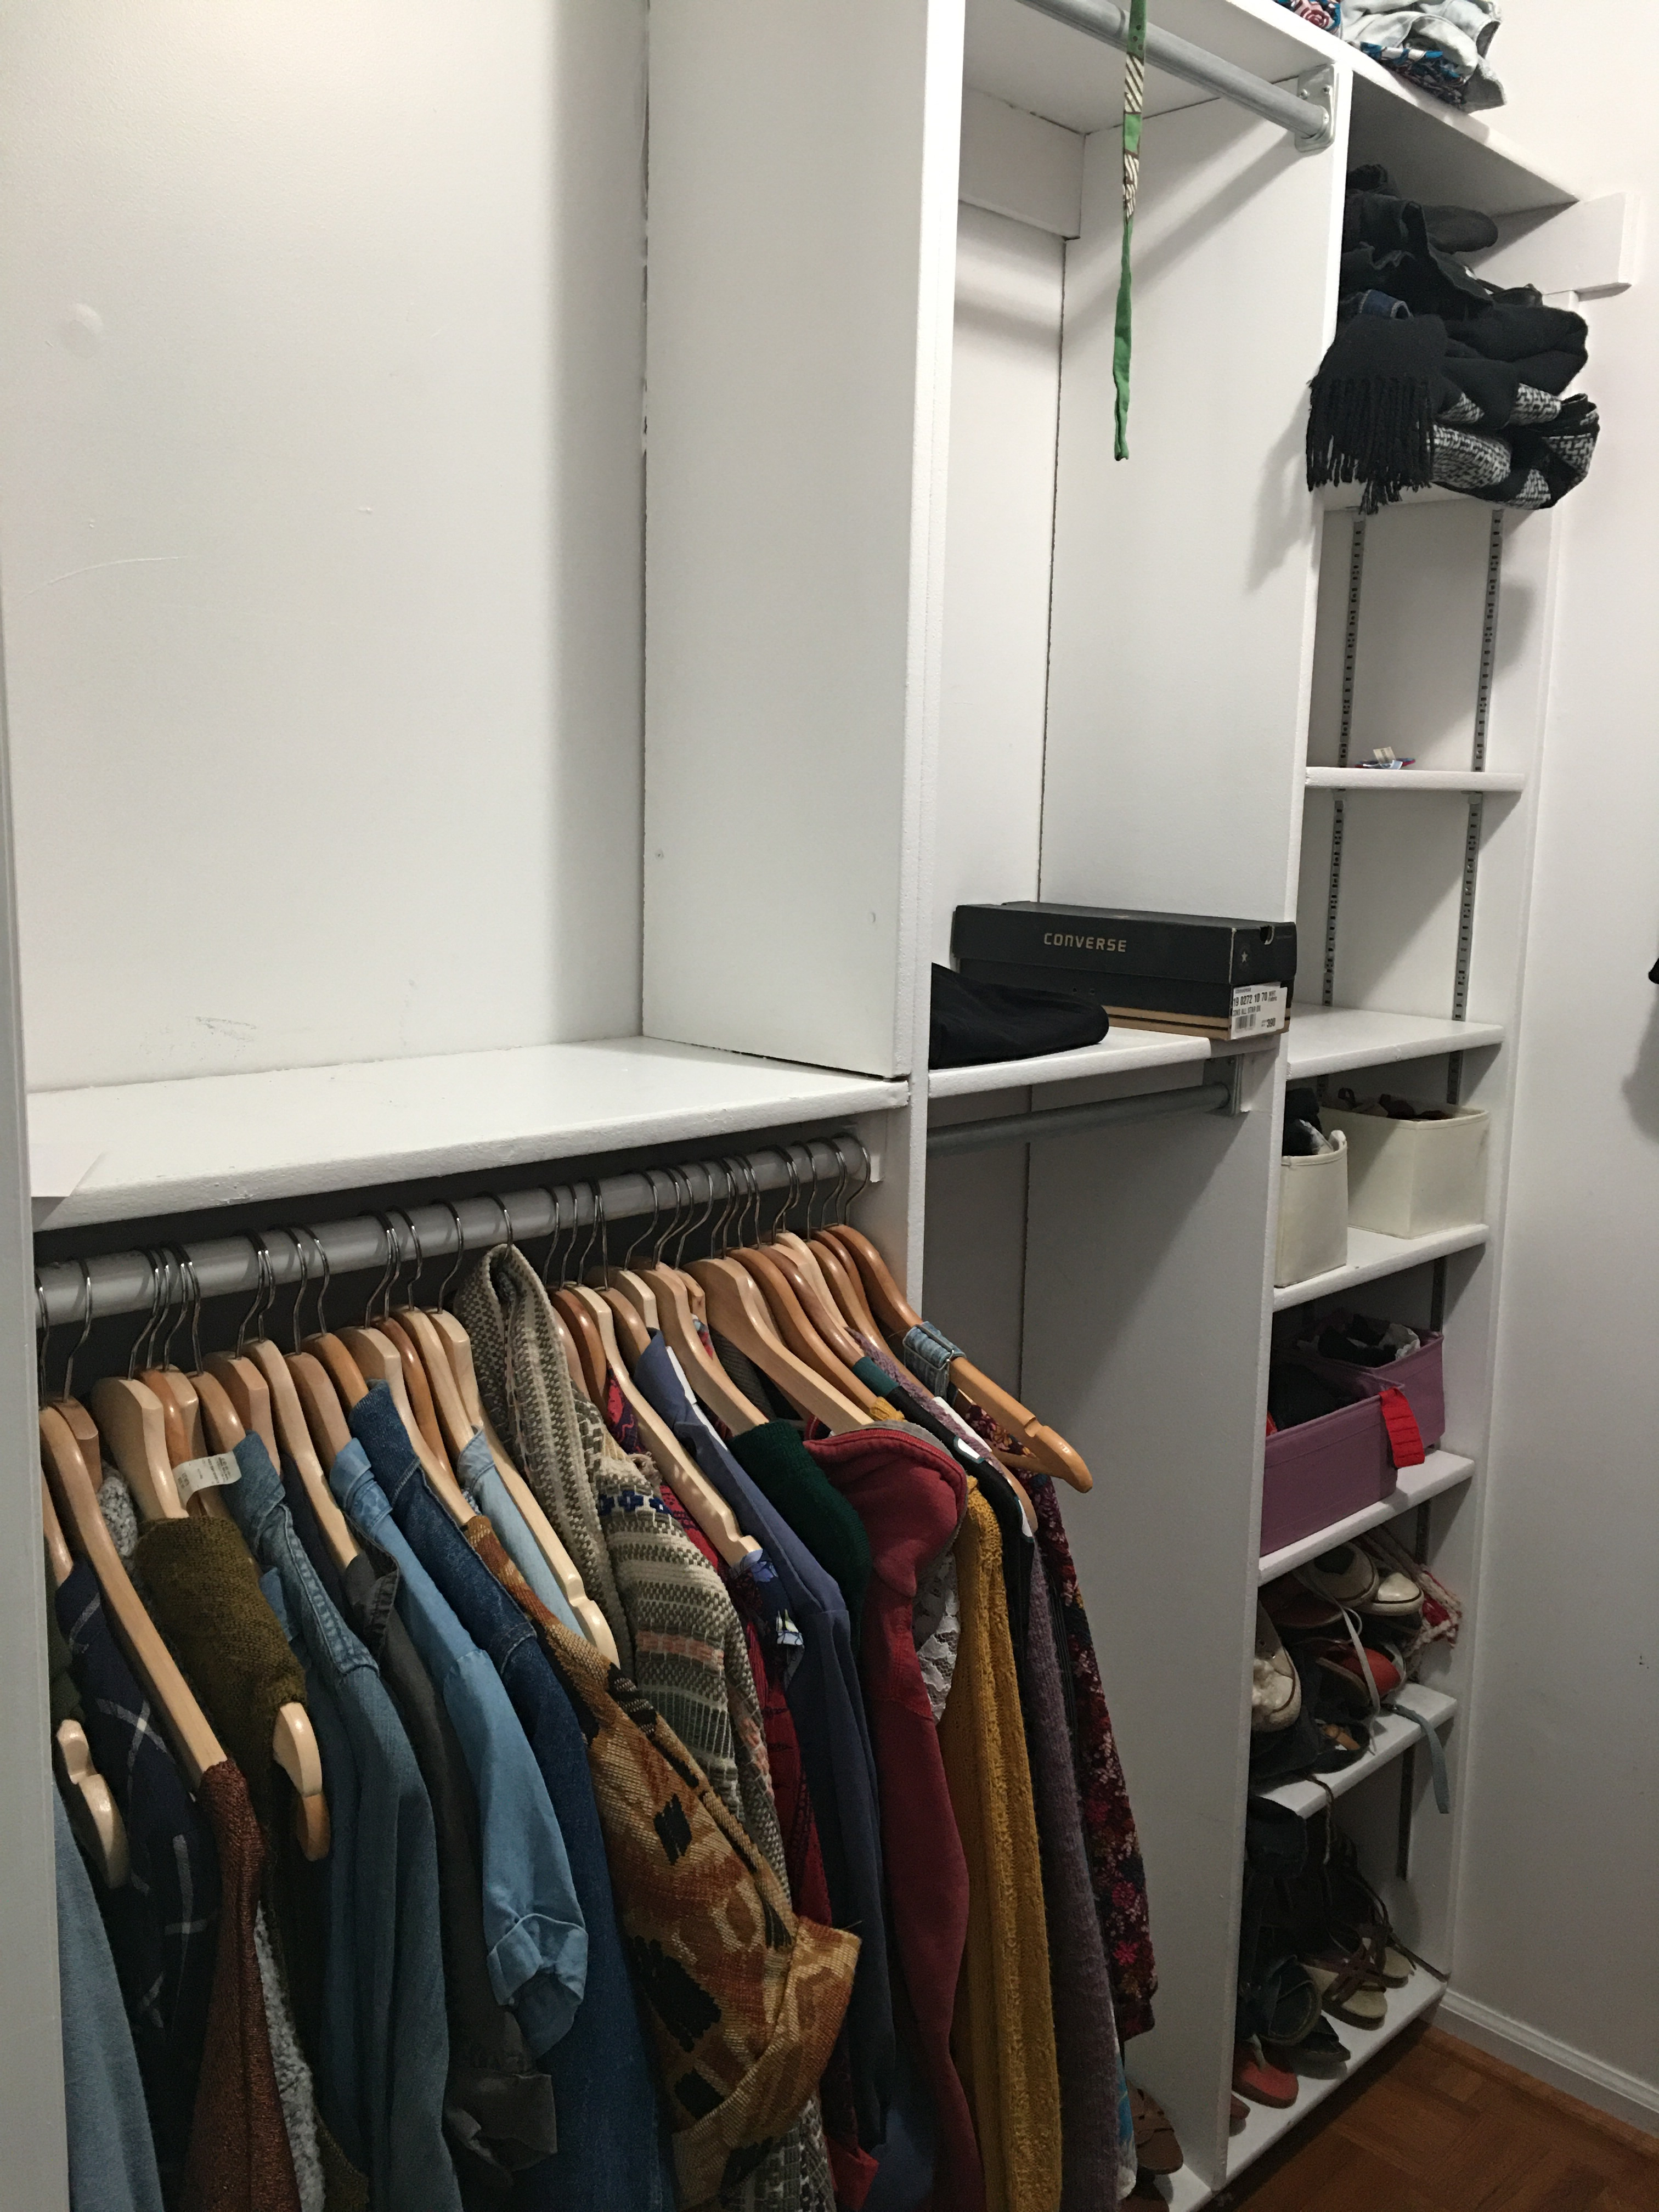 Clear out of the closet